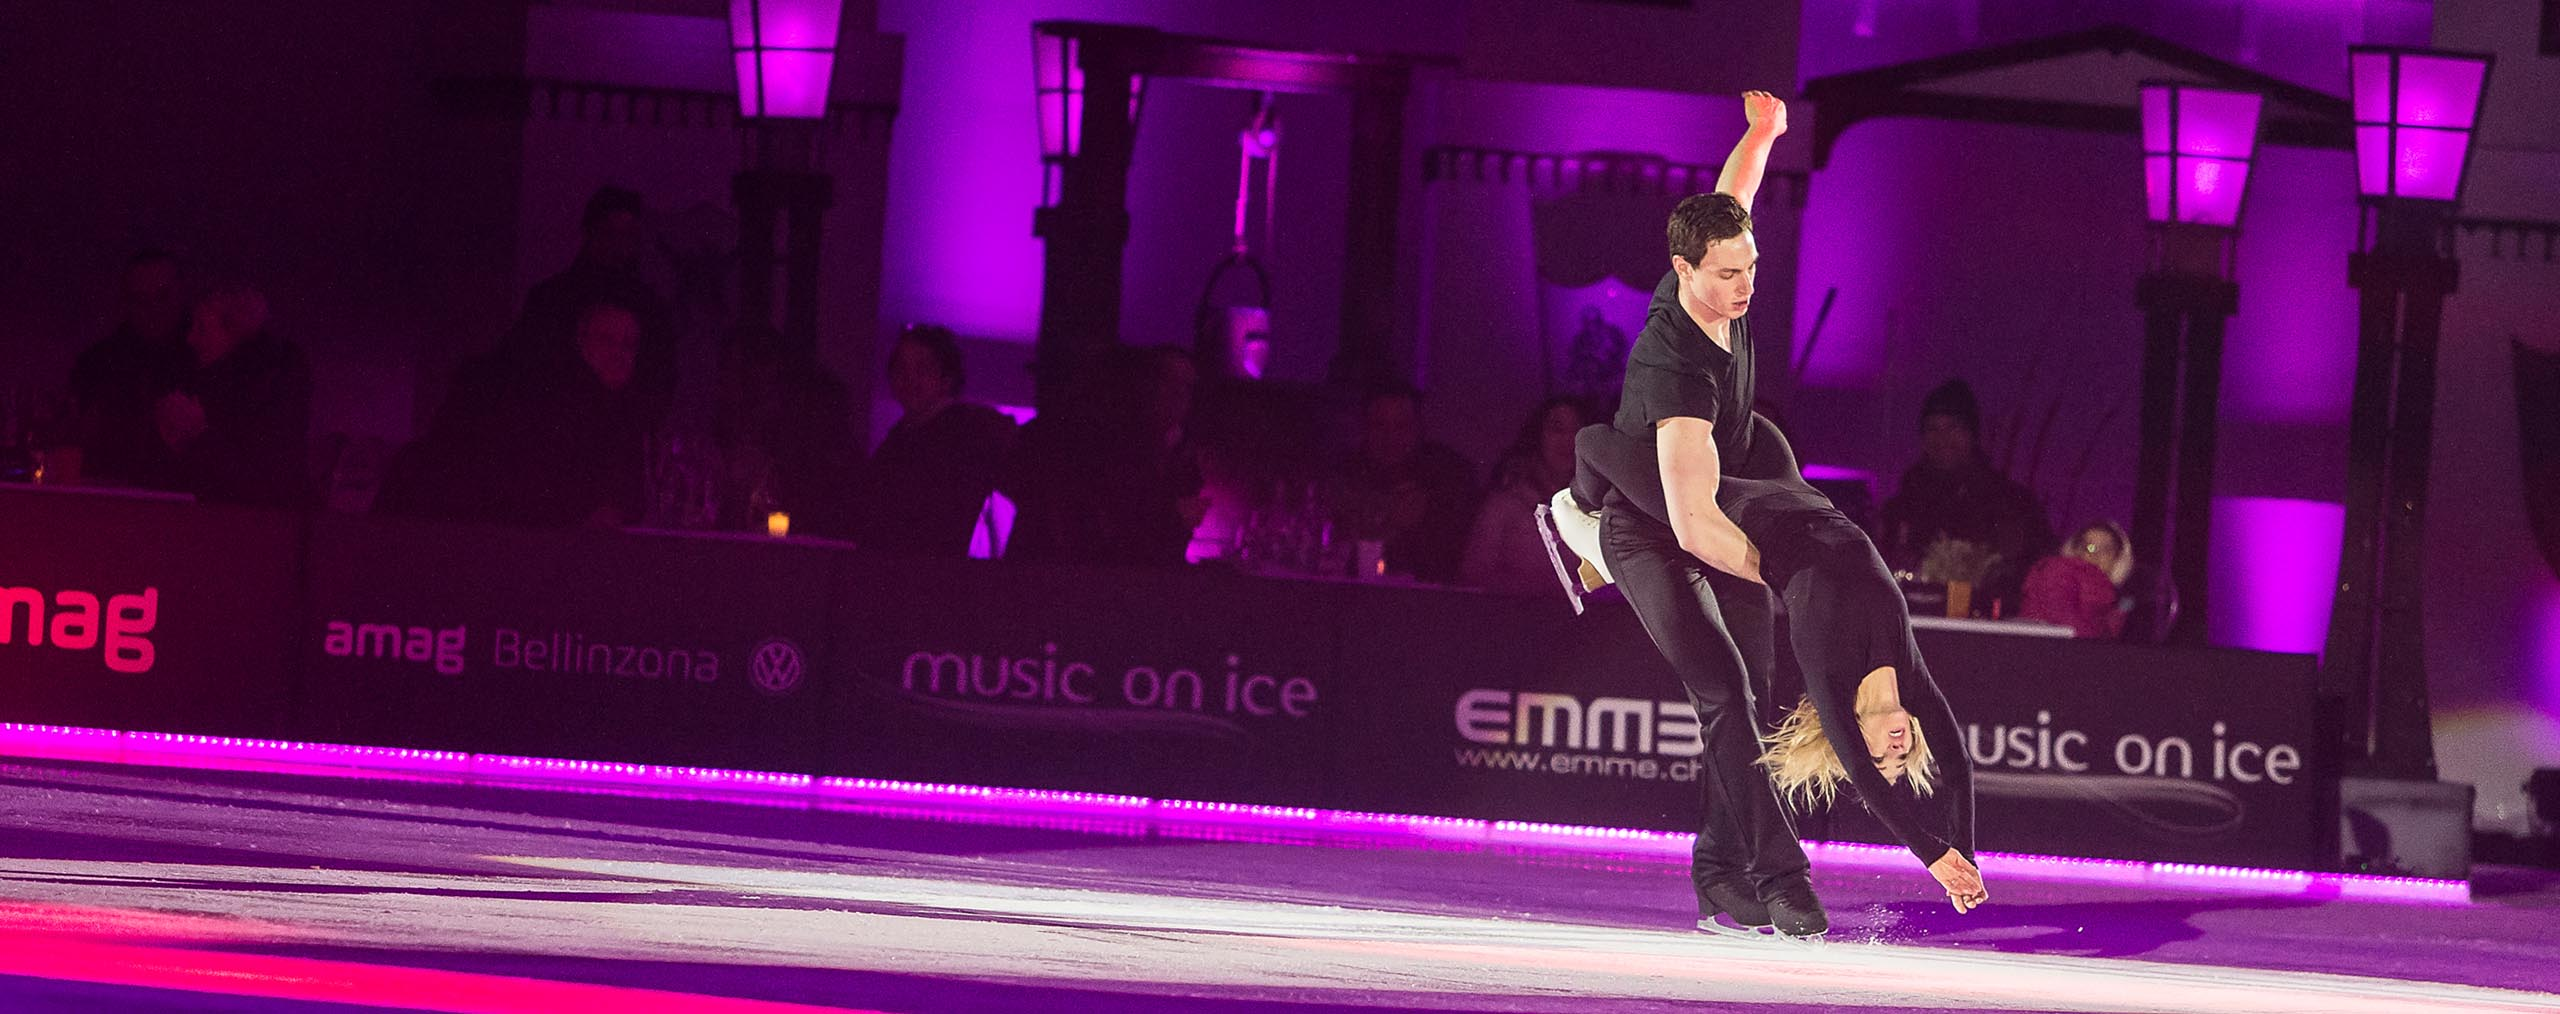 Aljona Savchenk & Bruno Massot Music on Ice